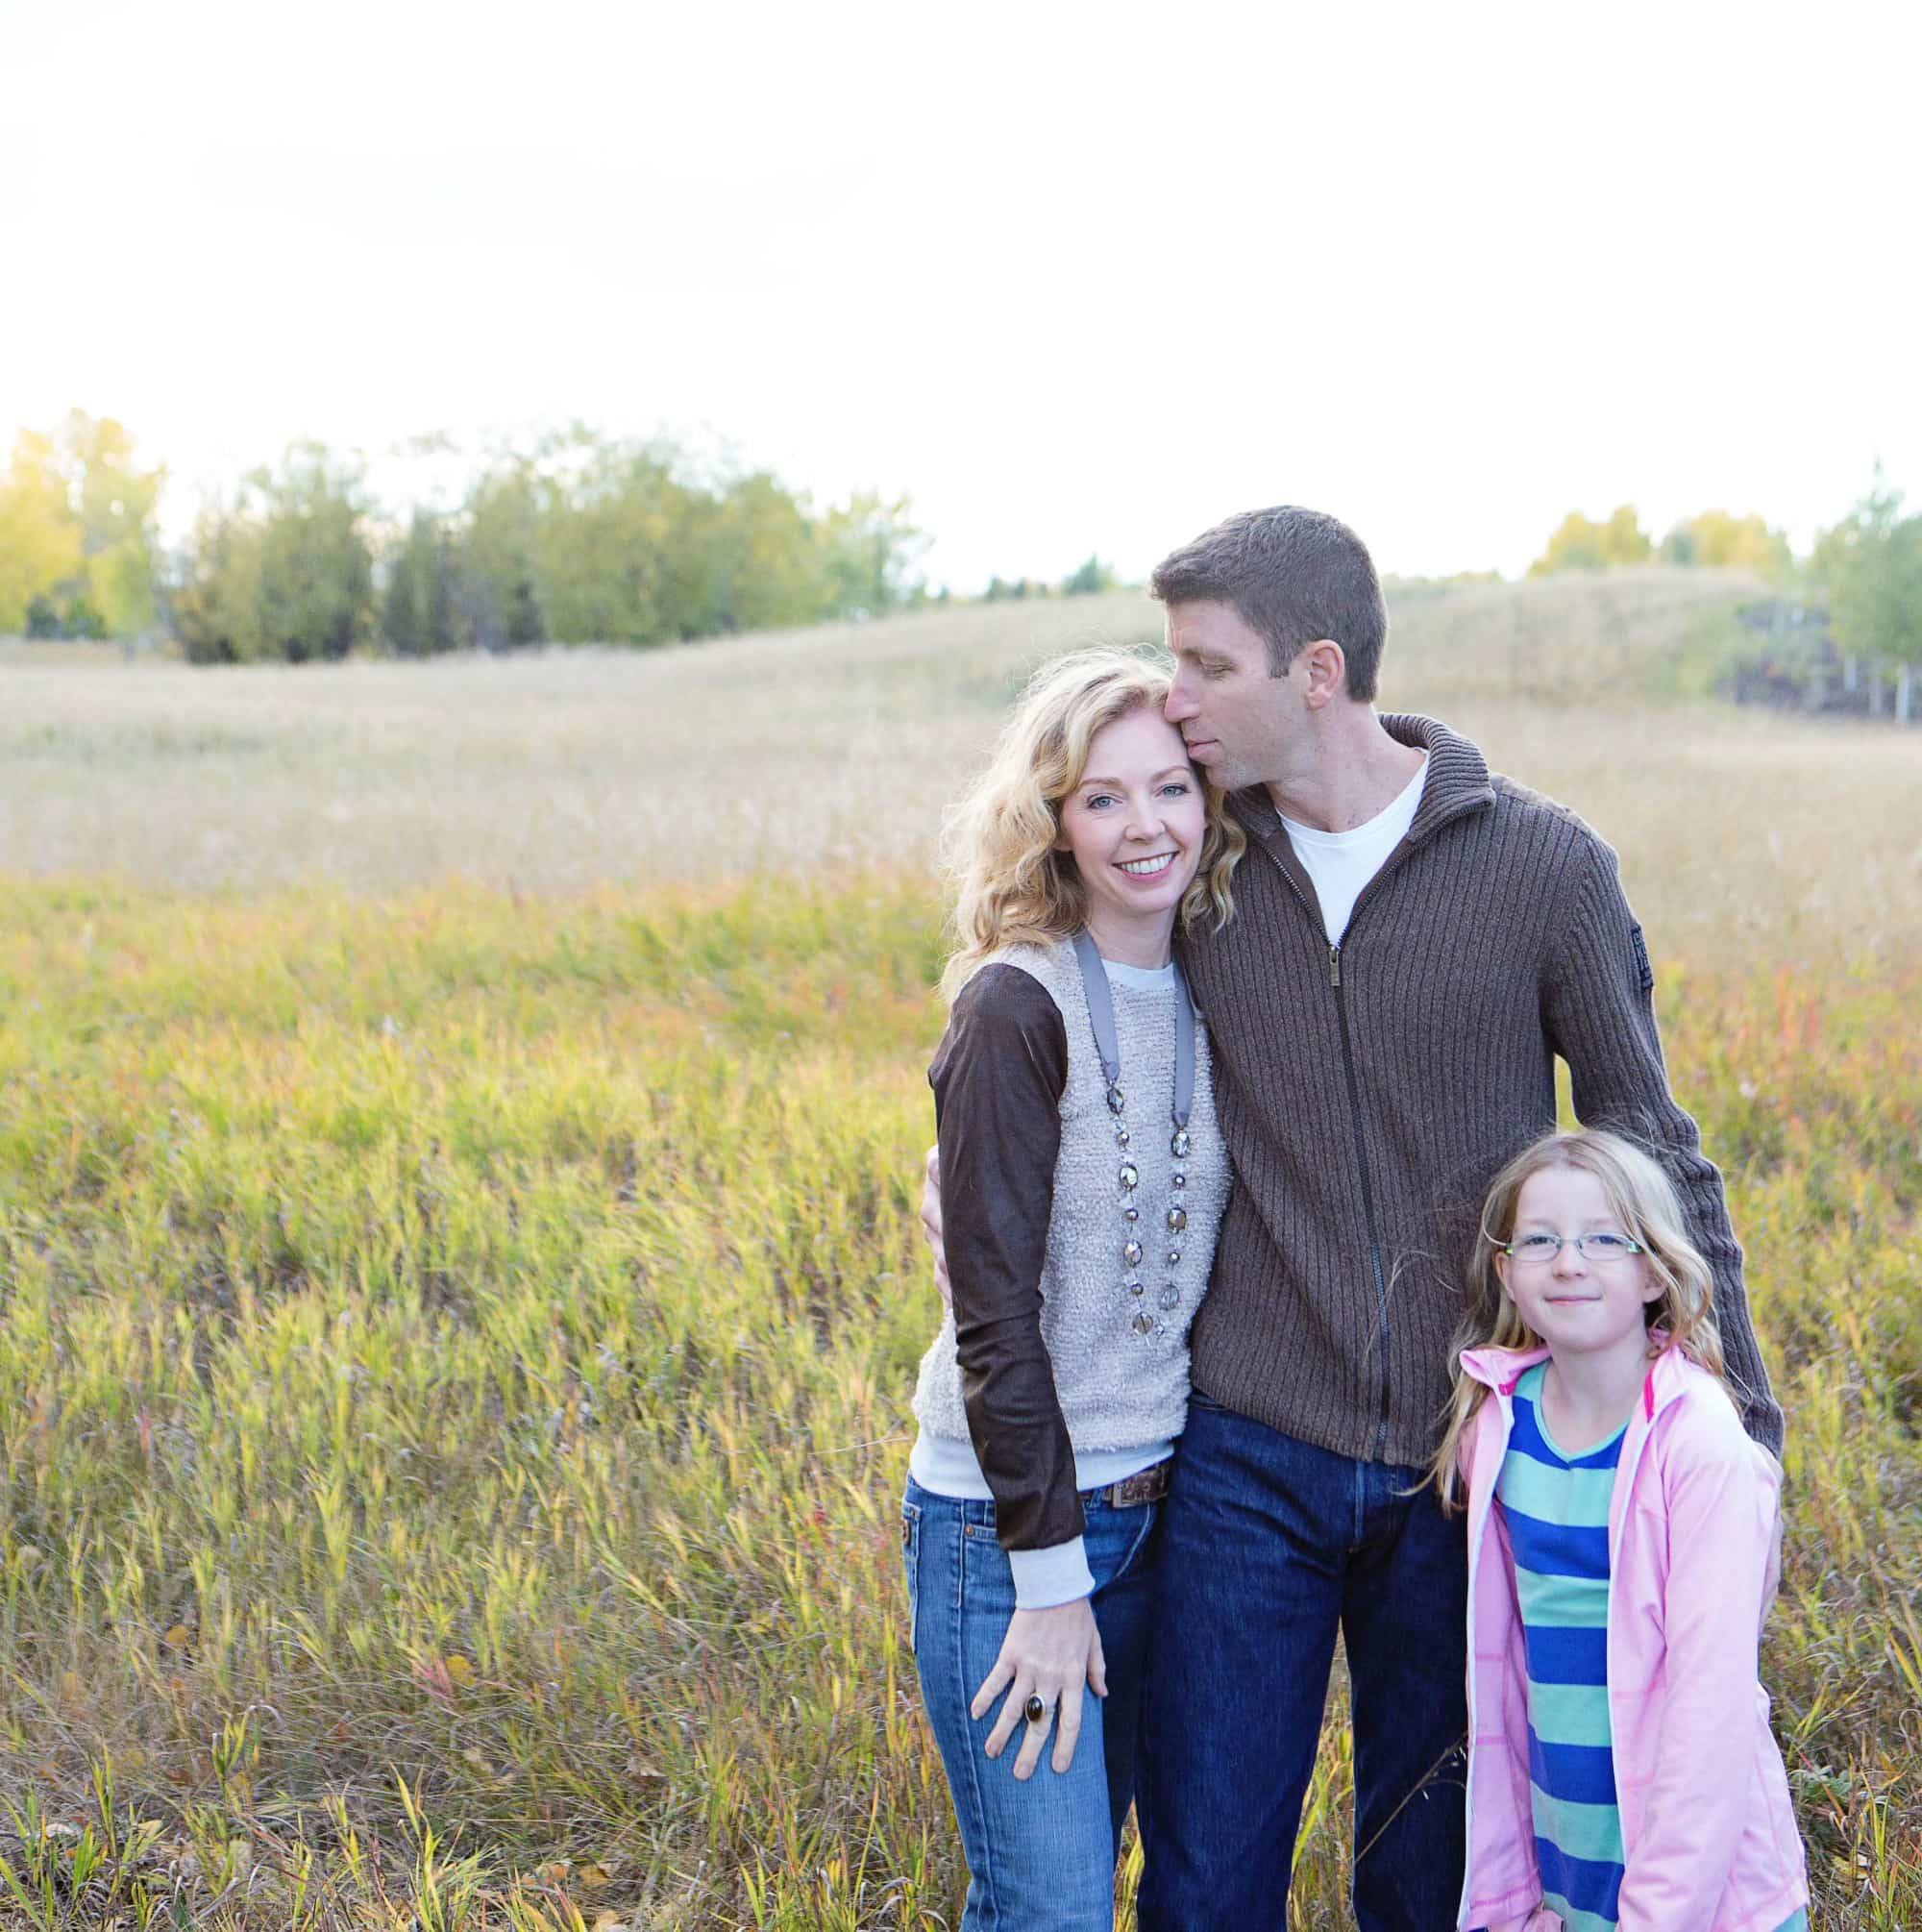 25 Places in Canada Every Family Should Visit Author Jody Robbins with her husband and family